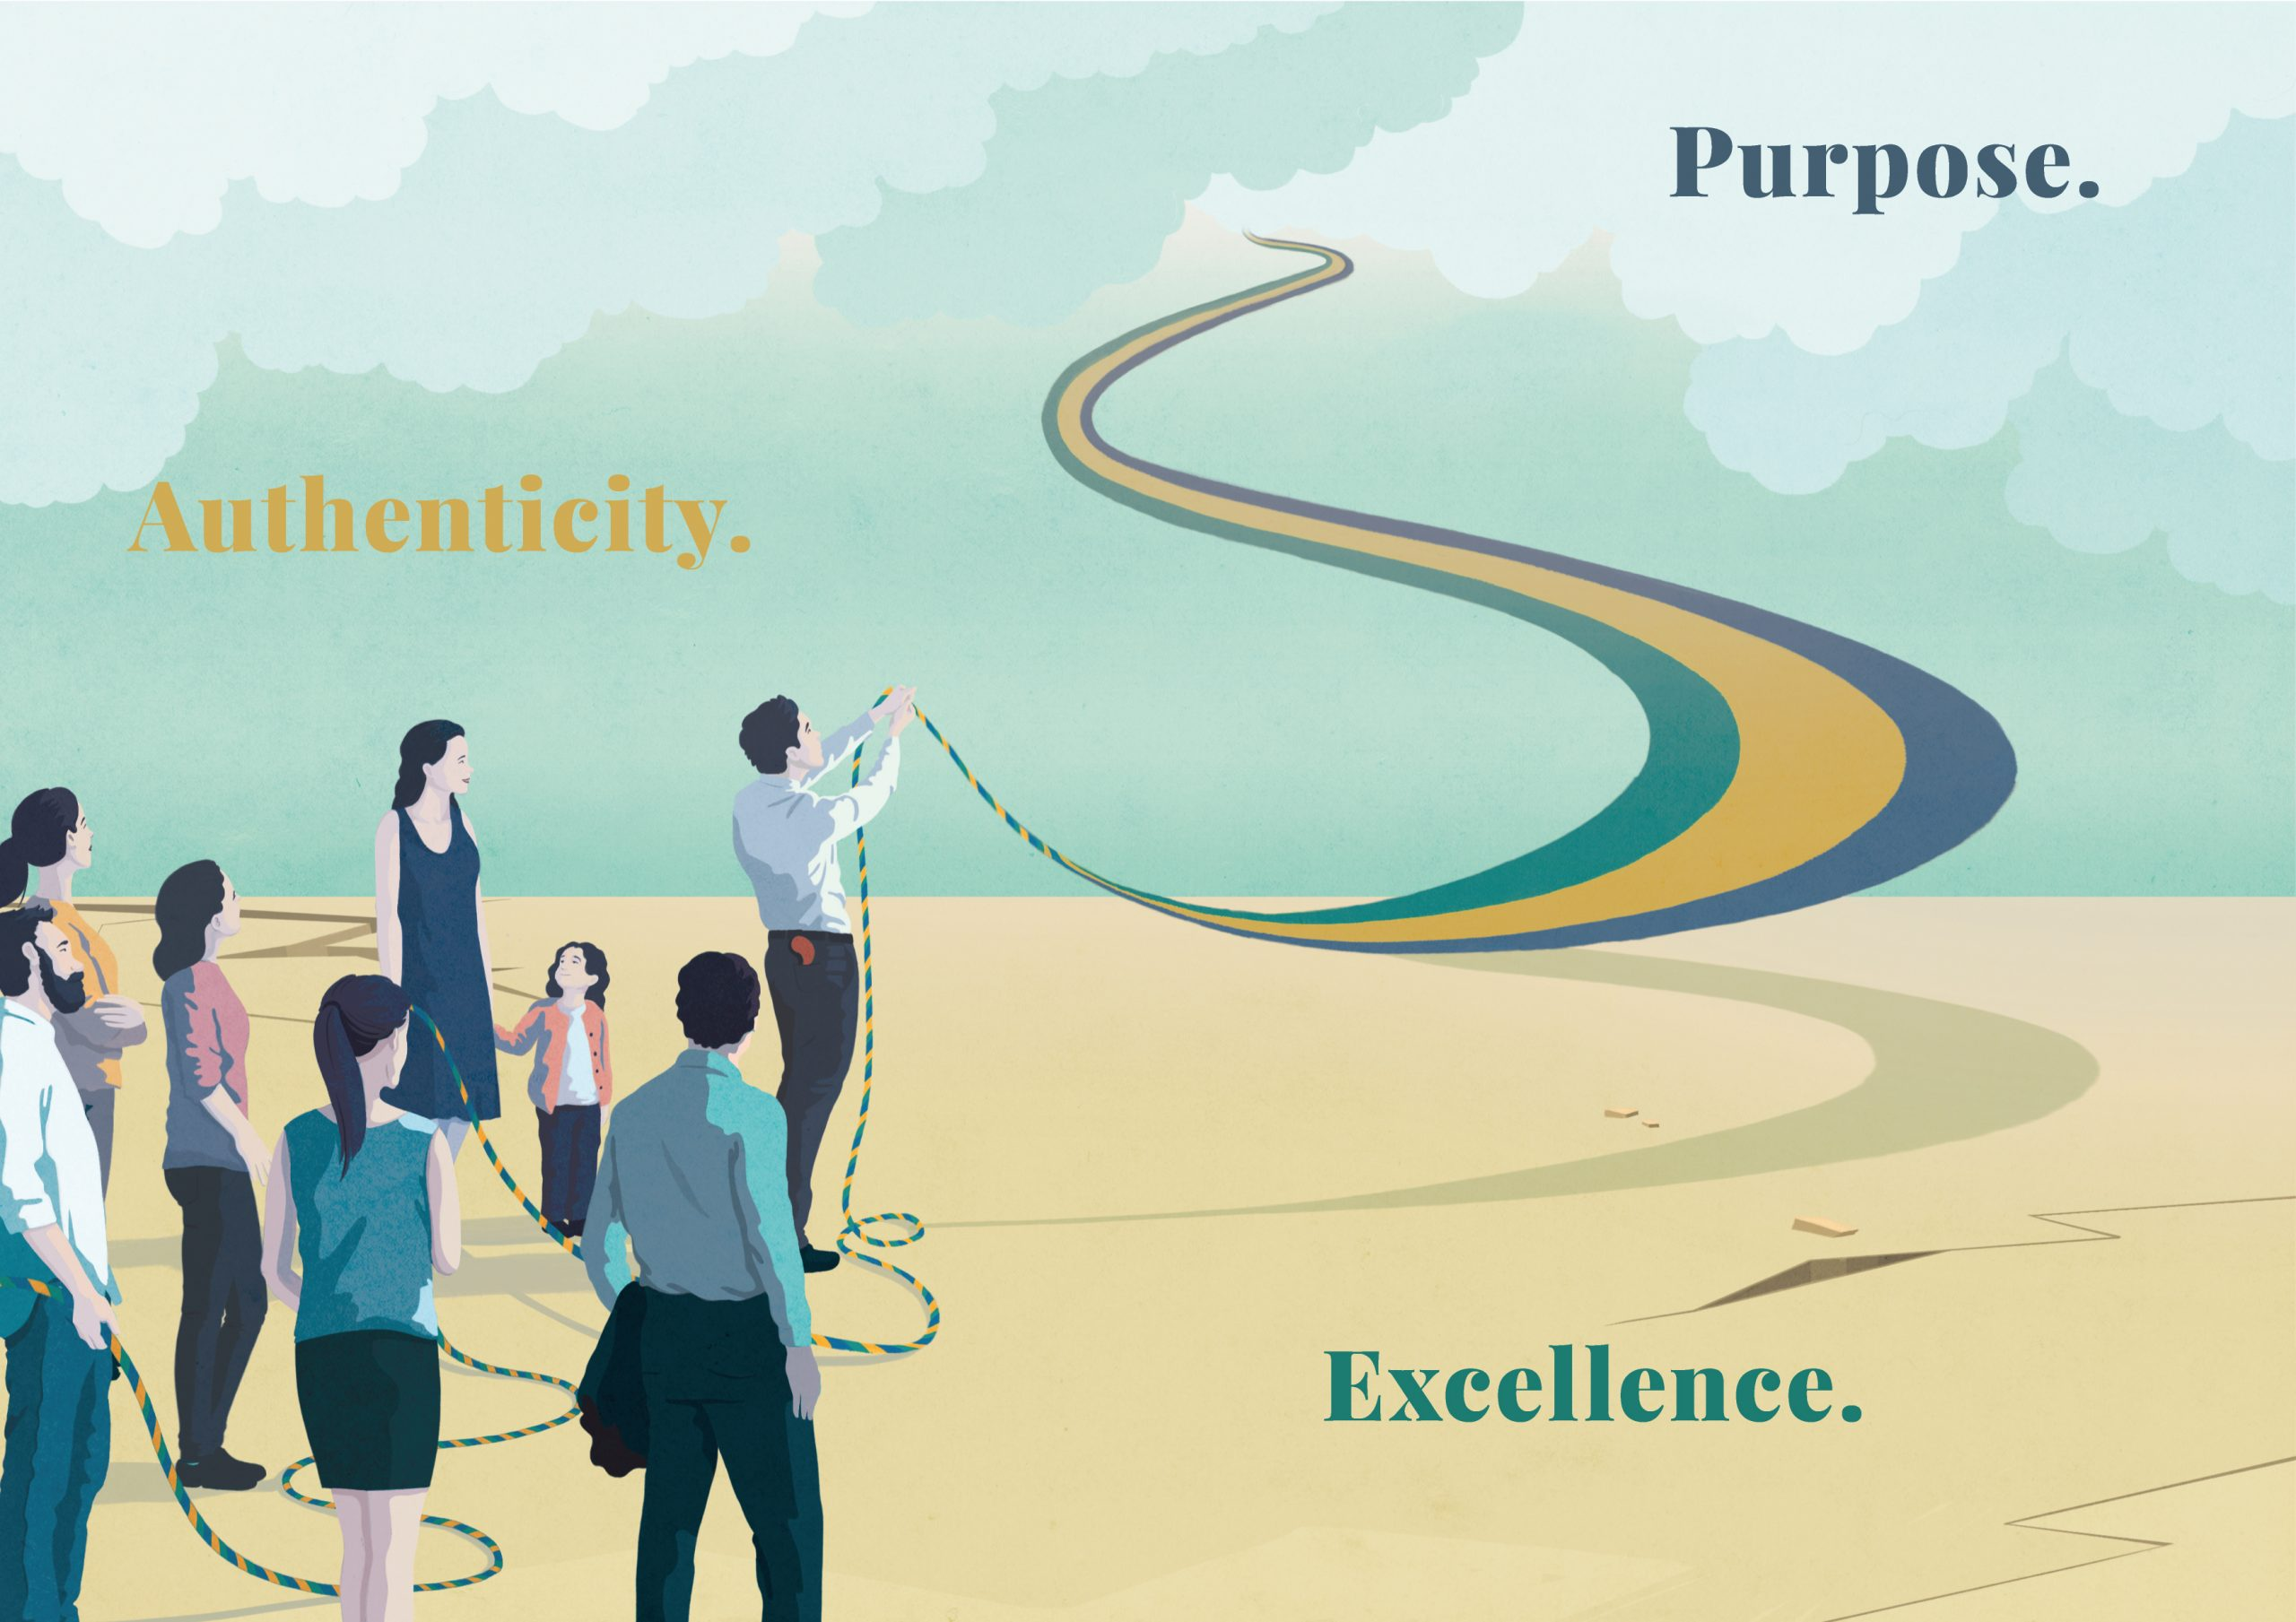 Preludes Authenticity Purpose Excellence